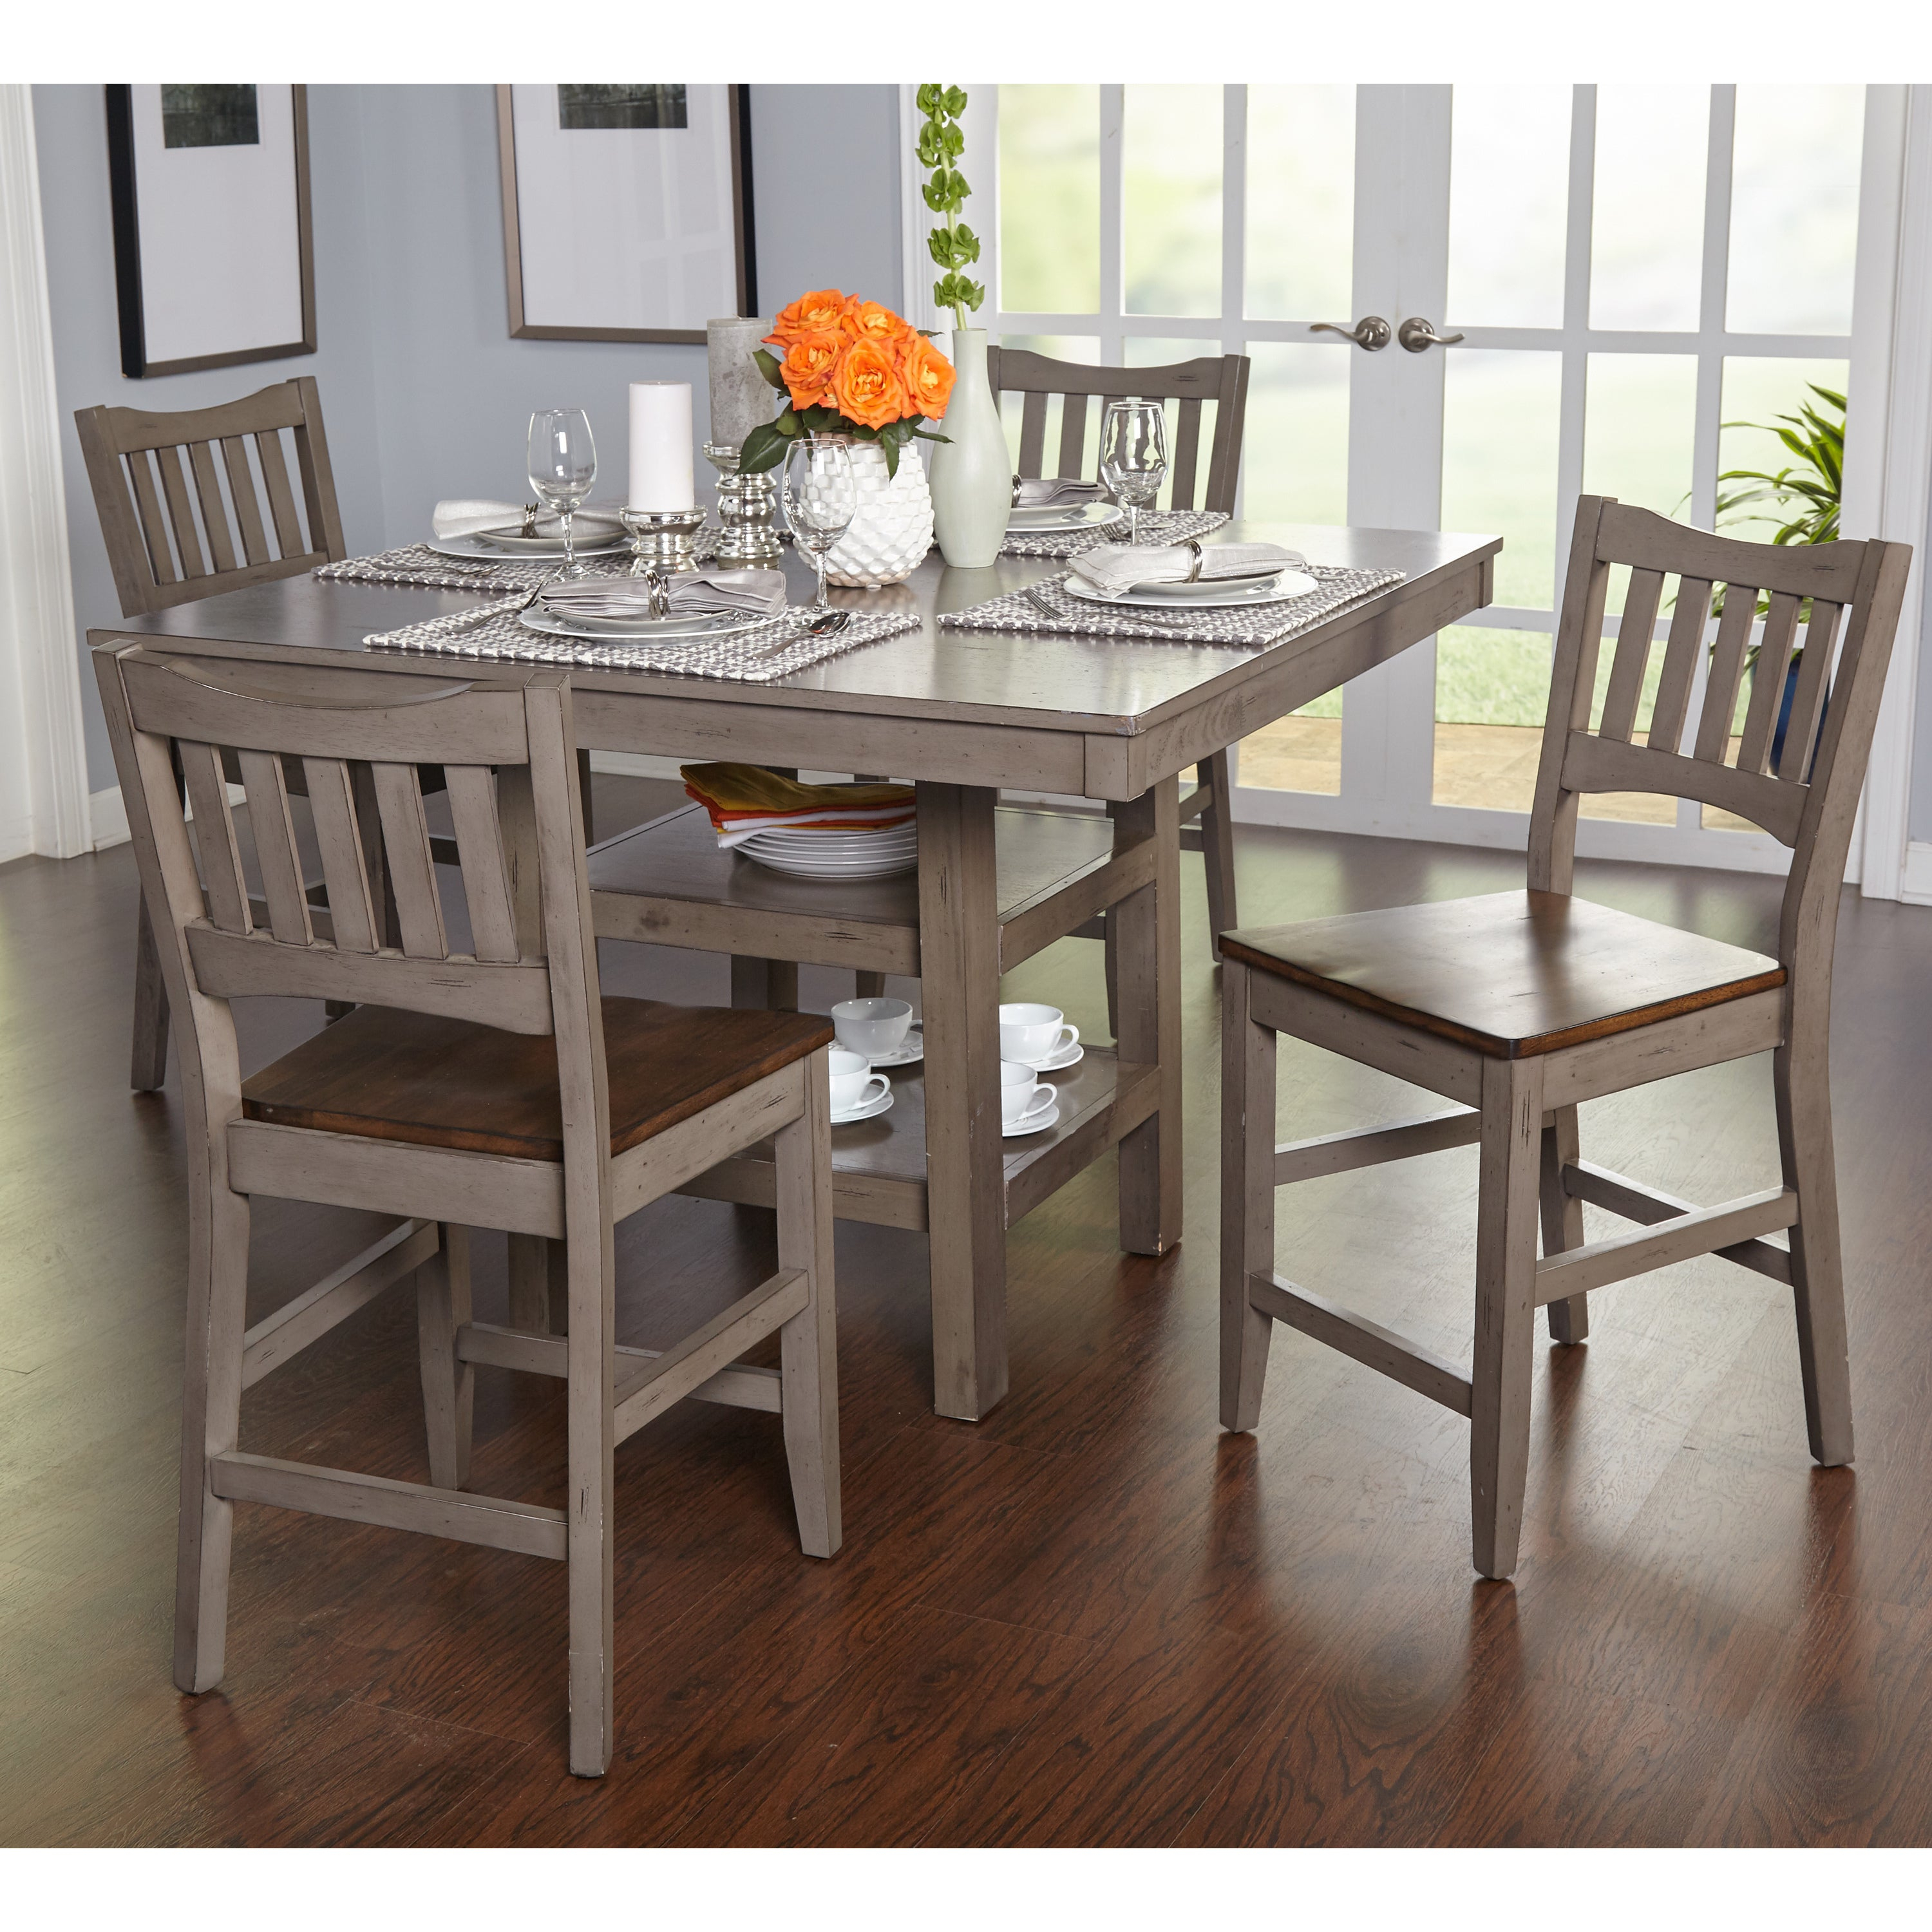 Shop Simple Living Simon Counter Height 5 Piece Dining Set – Free With Regard To Newest 5 Piece Dining Sets (#16 of 20)